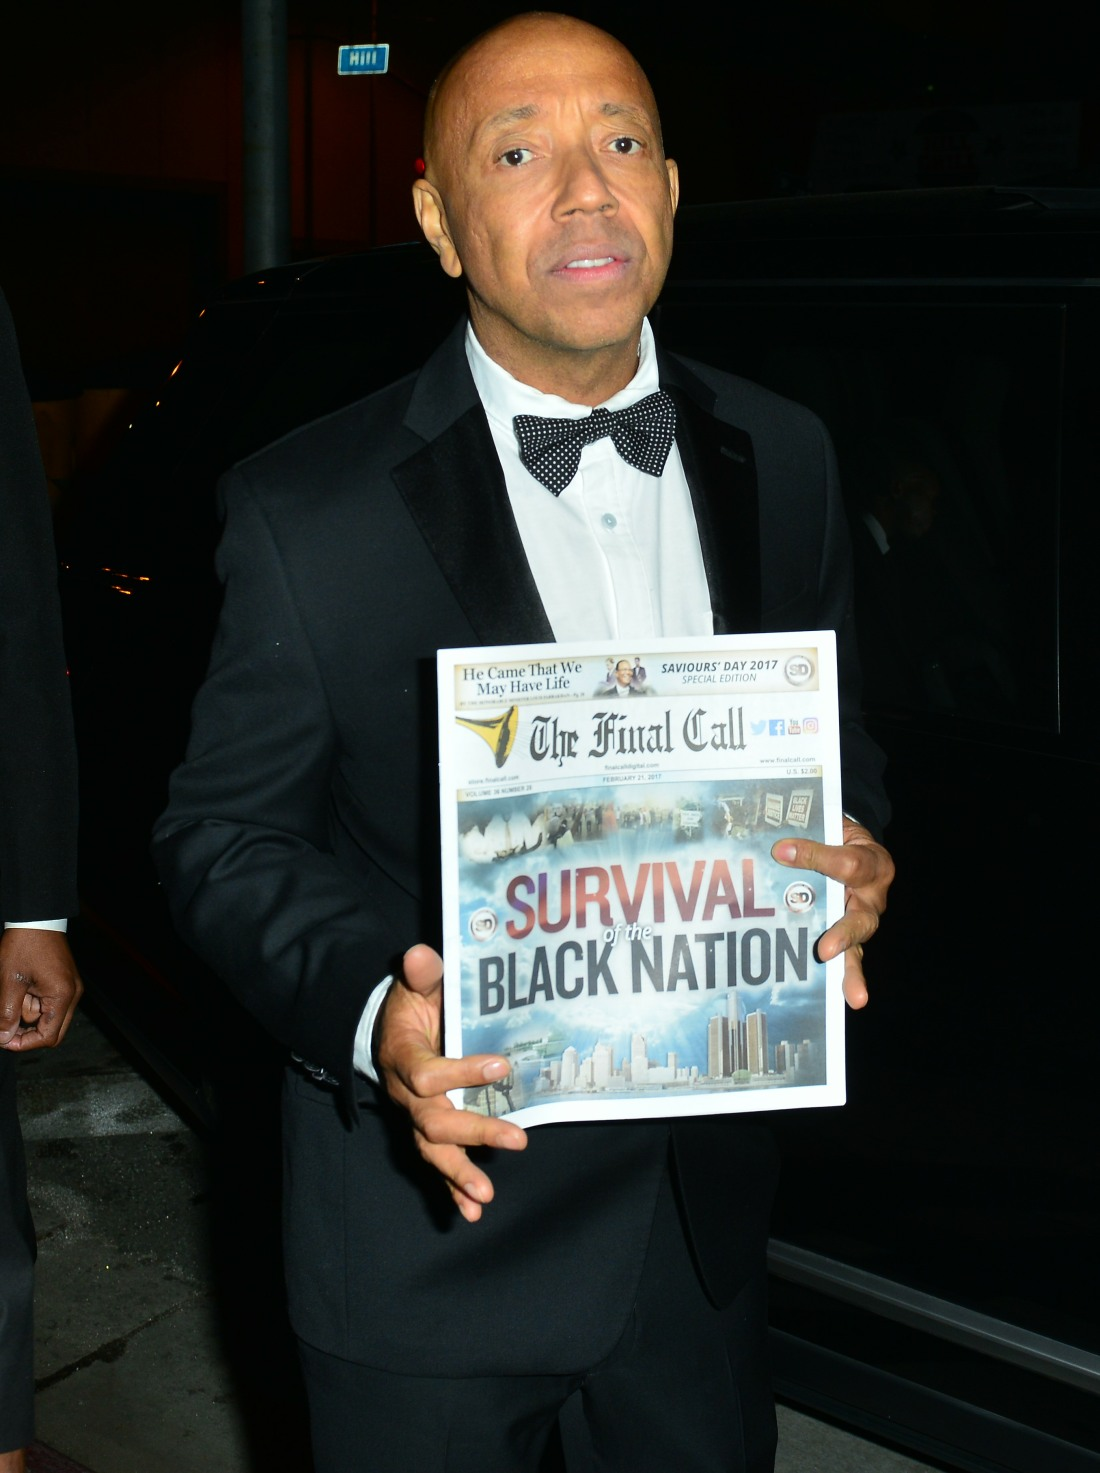 Russell Simmons and The 'Survival Black Nation' Movement